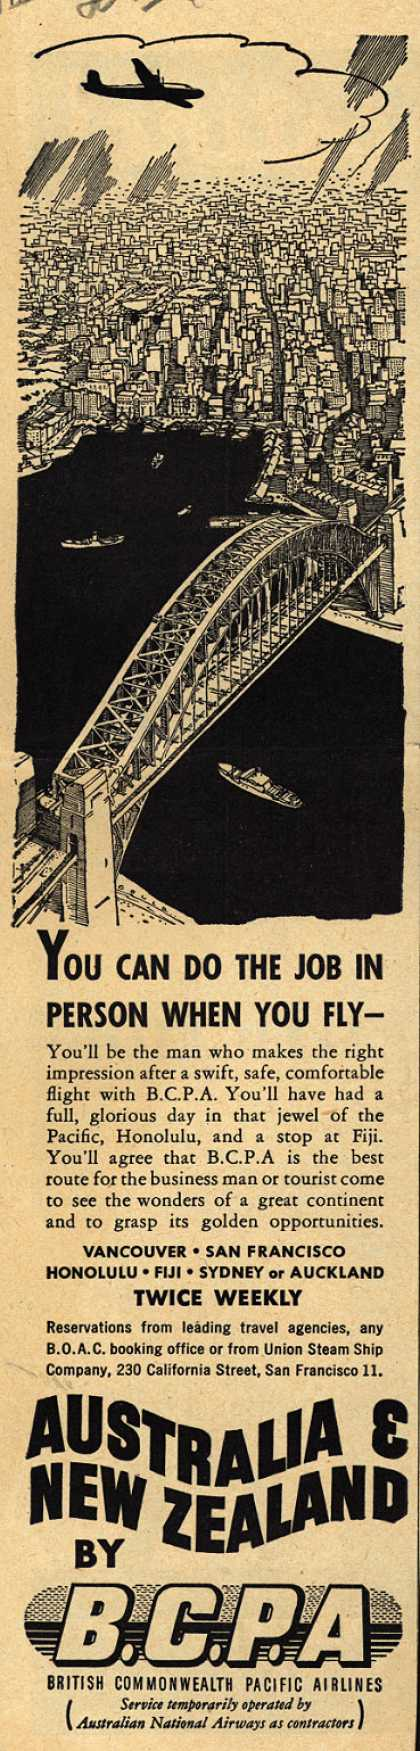 British Commonwealth Pacific Airlines, Limited's Australia and New Zealand – You Can Do the Job in Person When You Fly- (1948)